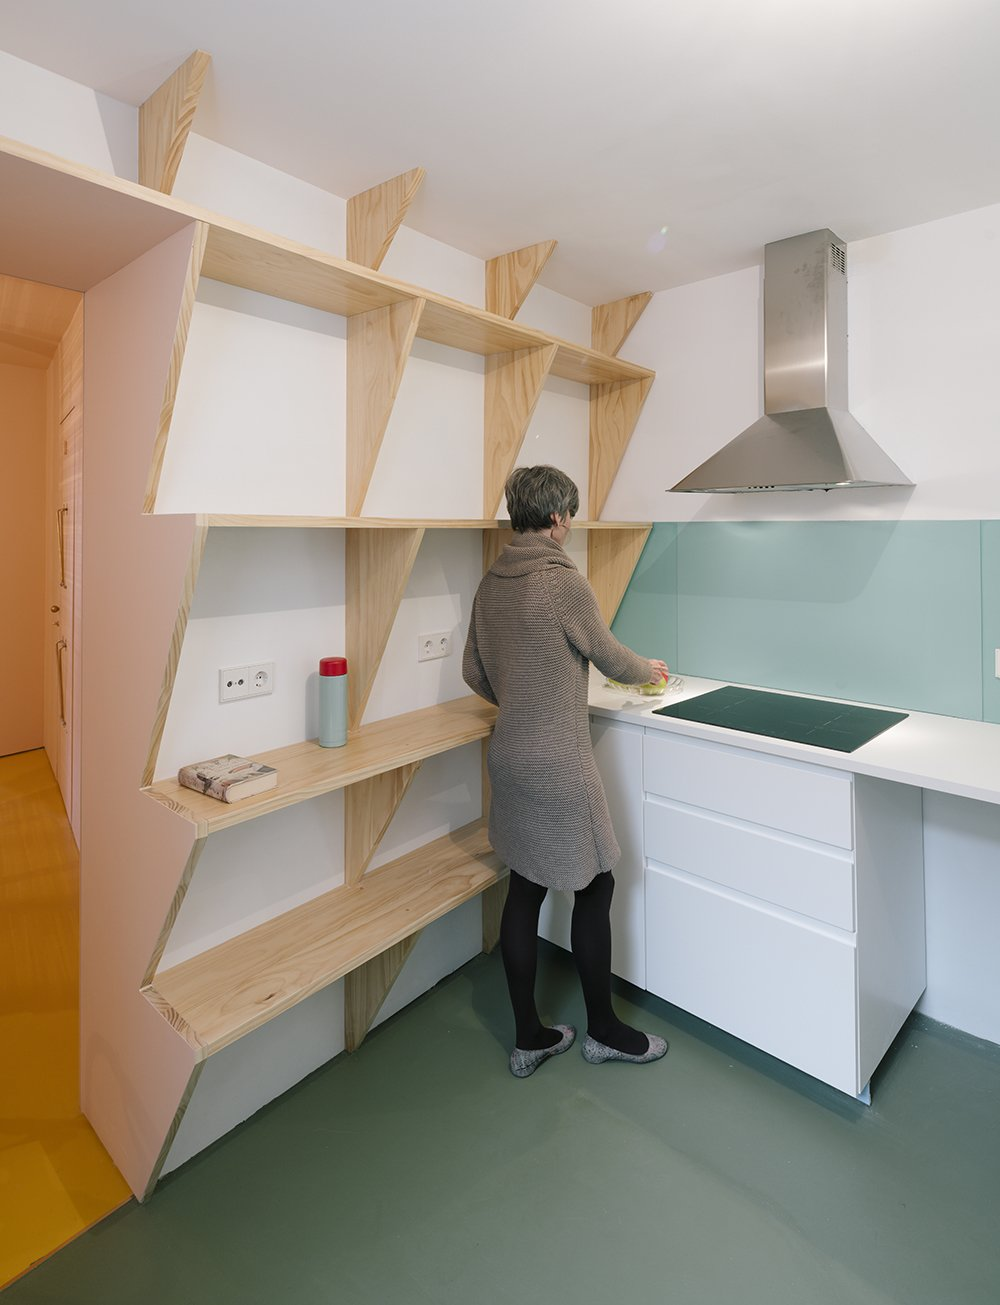 At just under 1,400 square feet, the three-bedroom apartment benefits from built-in space savers including sawtooth shelving and even a fold-out bench. Tagged: Kitchen, White Cabinet, and Range Hood.  Photo 5 of 7 in A Quirky Renovation Brings an Indoor Garden to the Center of Madrid